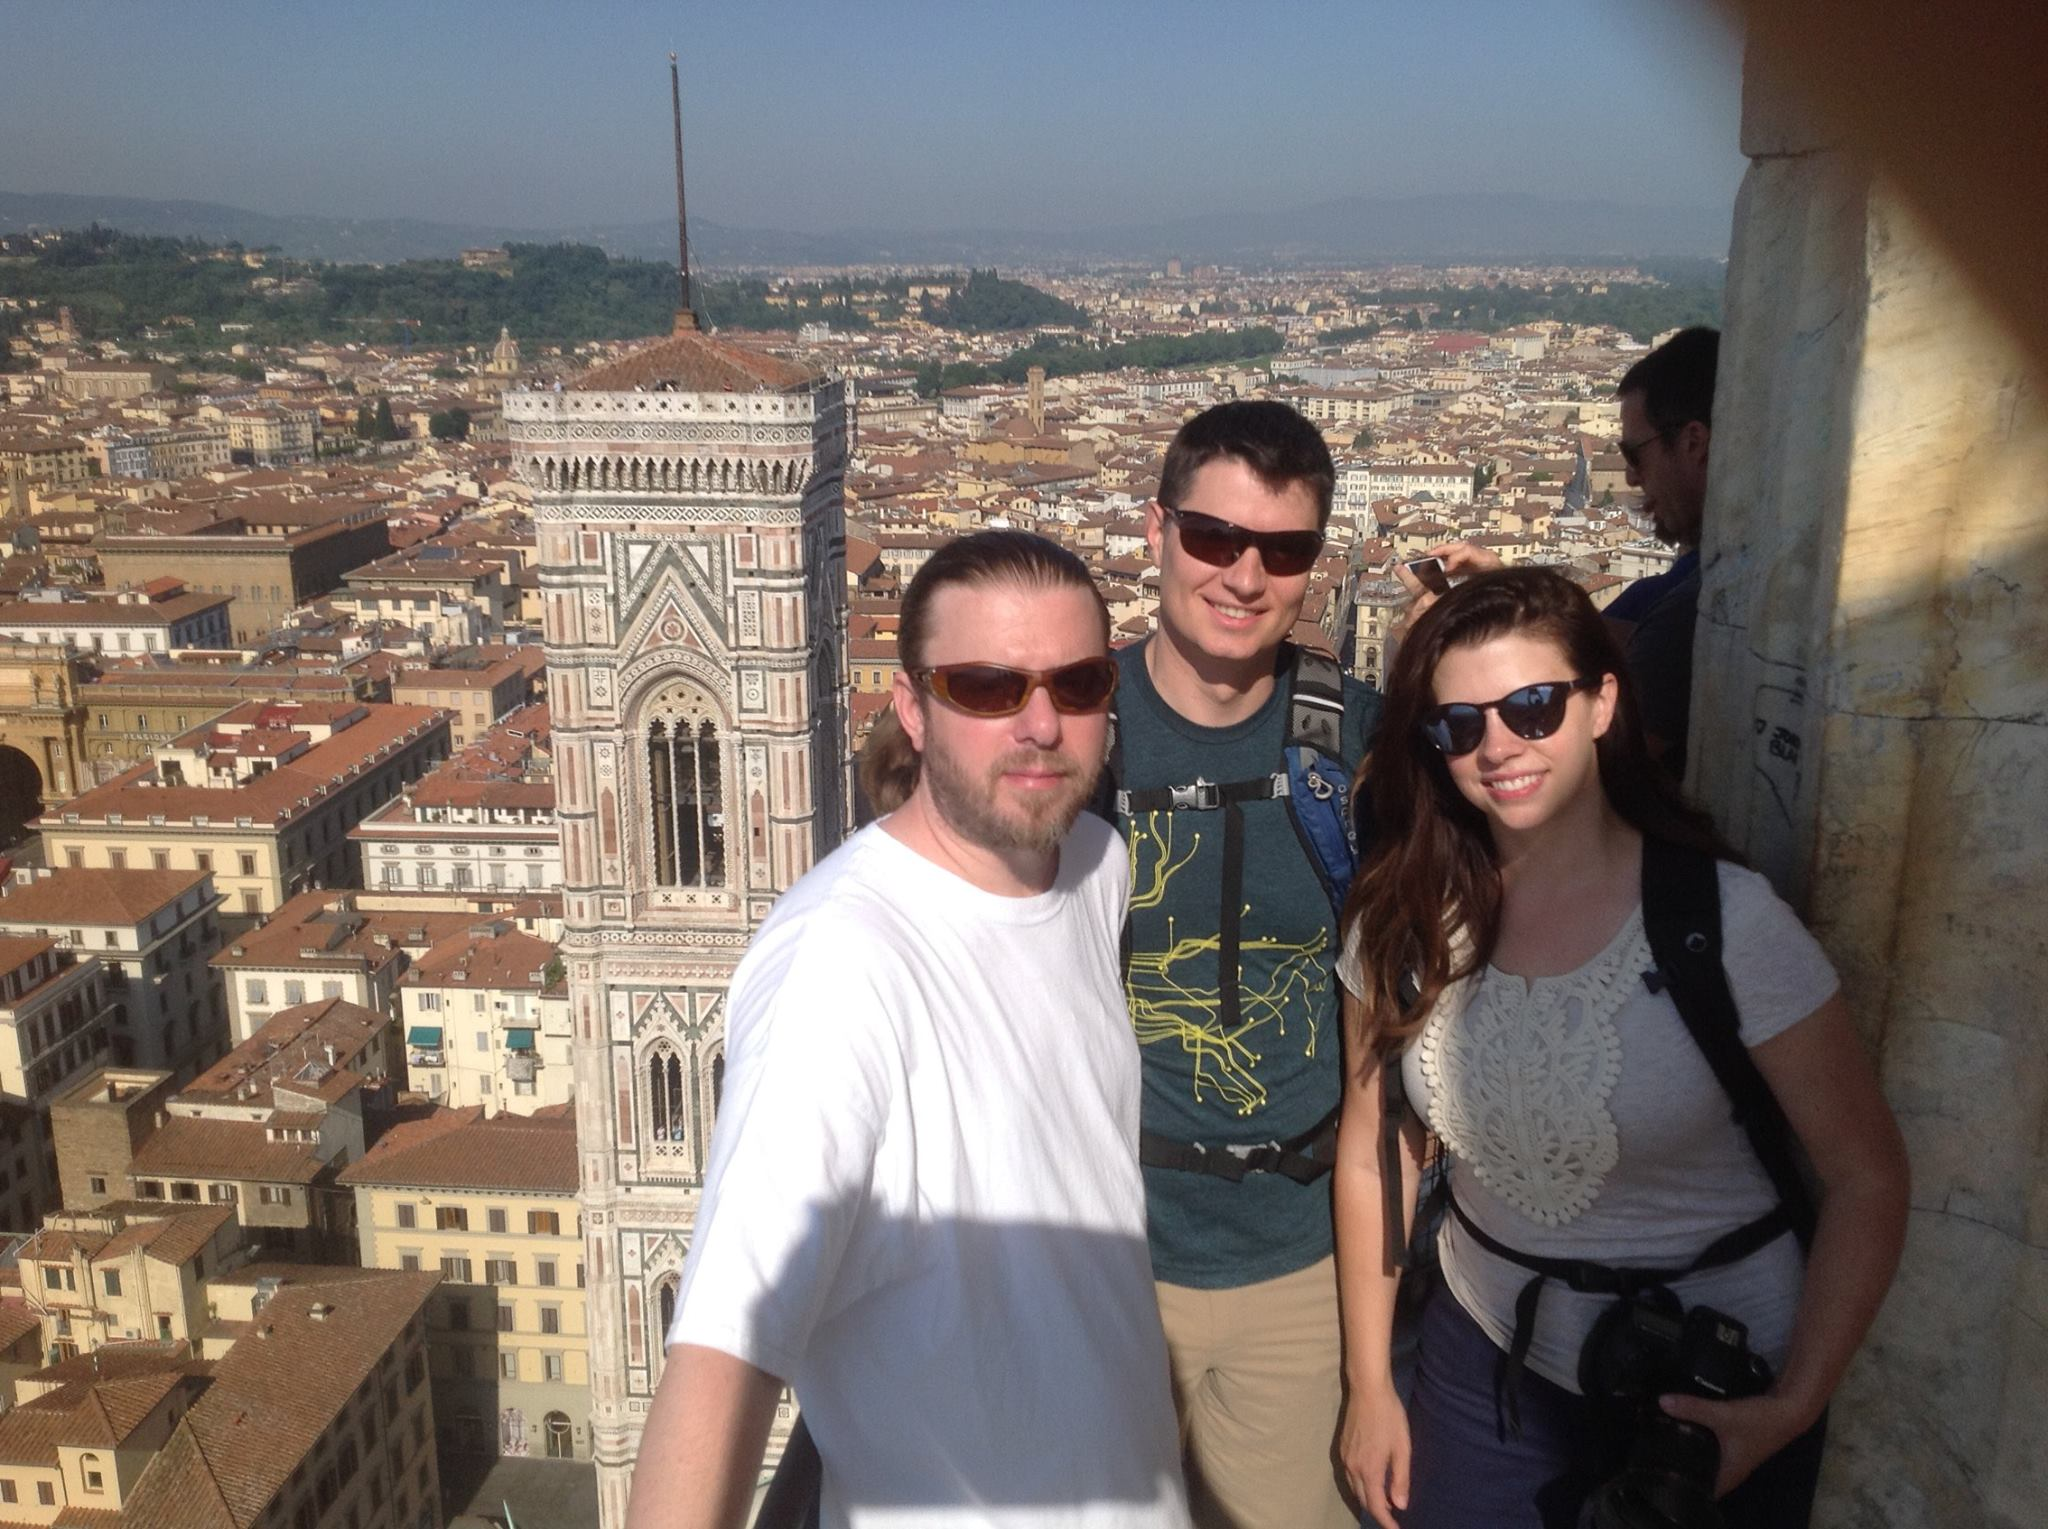 Florence 2016 - My brother Kelly and brother-in-law Rob with my sister Breanna, when they came to visit me in Amsterdam and we all went together to Florence and Cinque Terre, Italy.